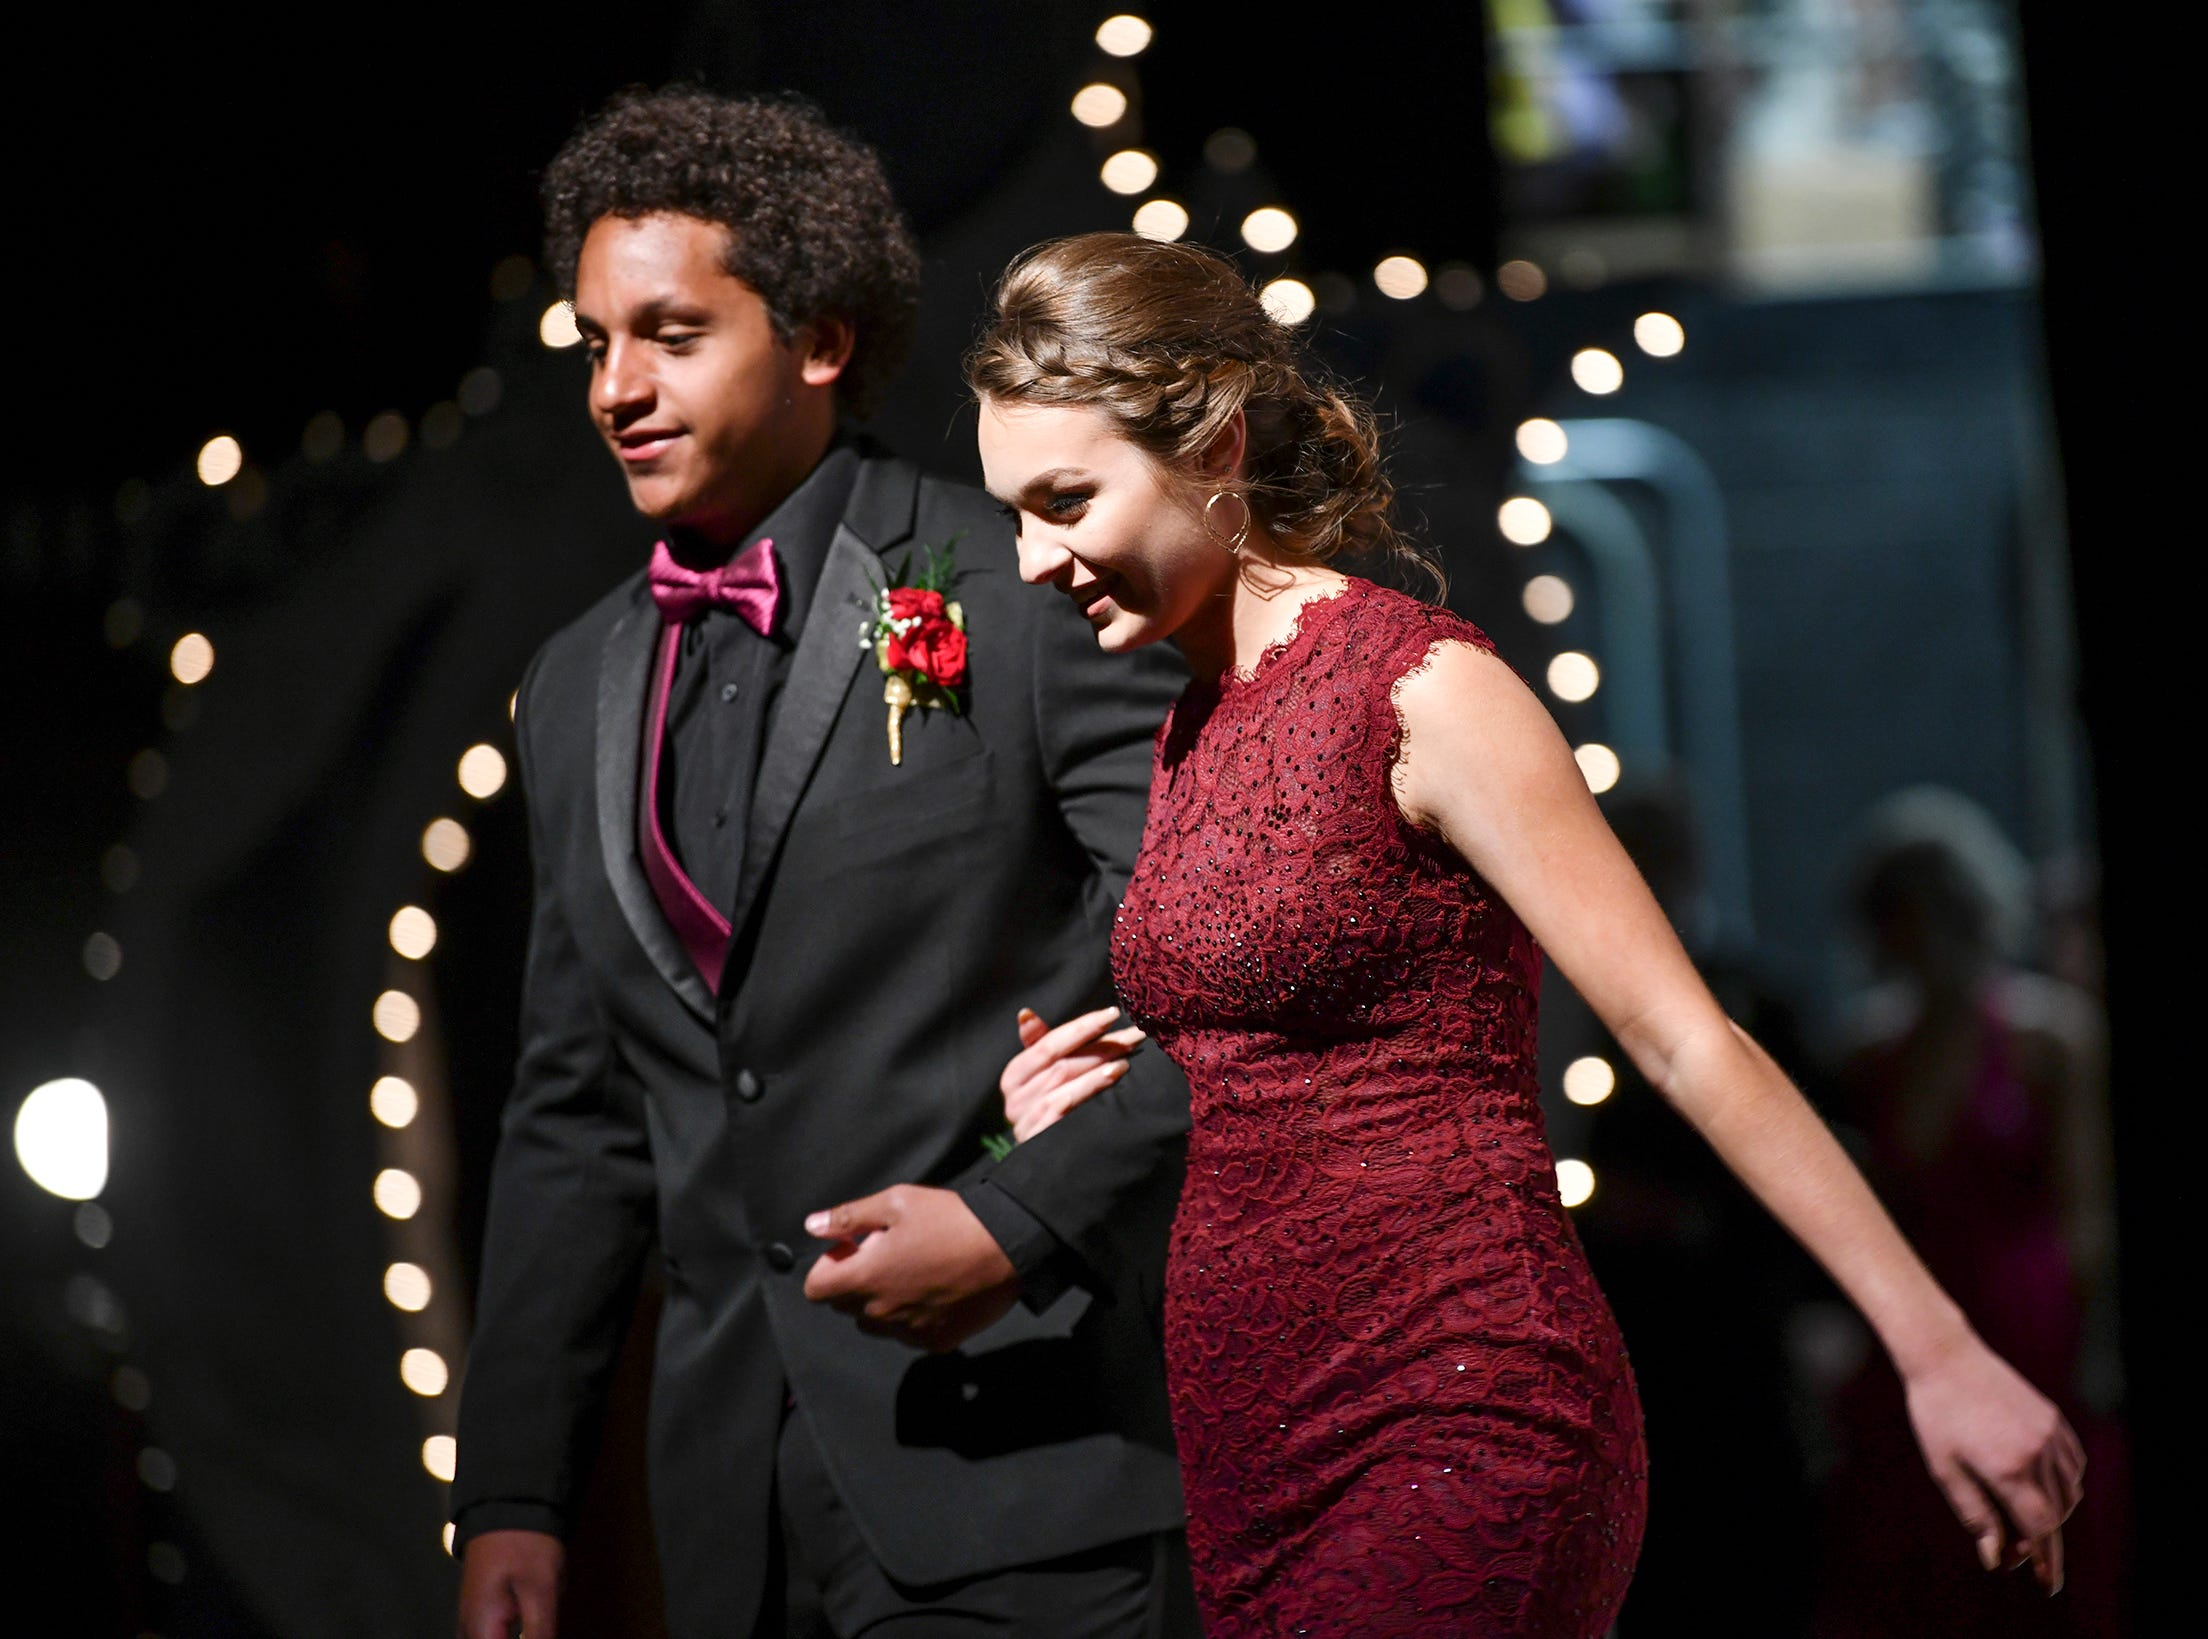 A couple makes their way off stage after taking part in prom grand march Saturday, May 11, at Apollo High School in St. Cloud.